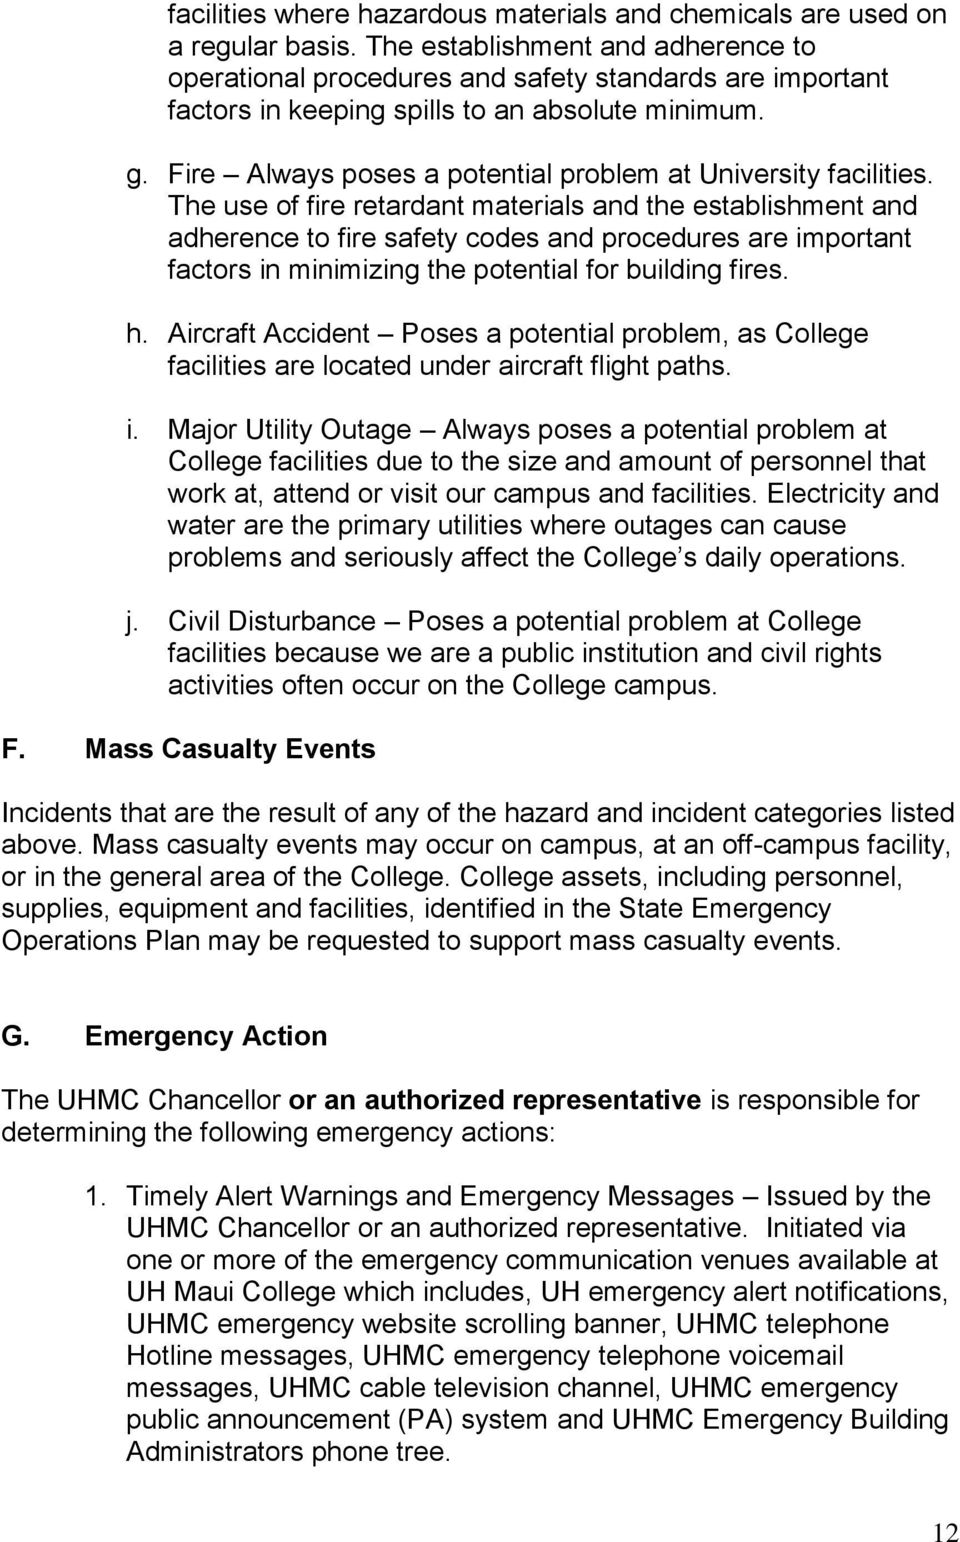 University Of Hawaii Maui College Emergency Operation Plan Pdf